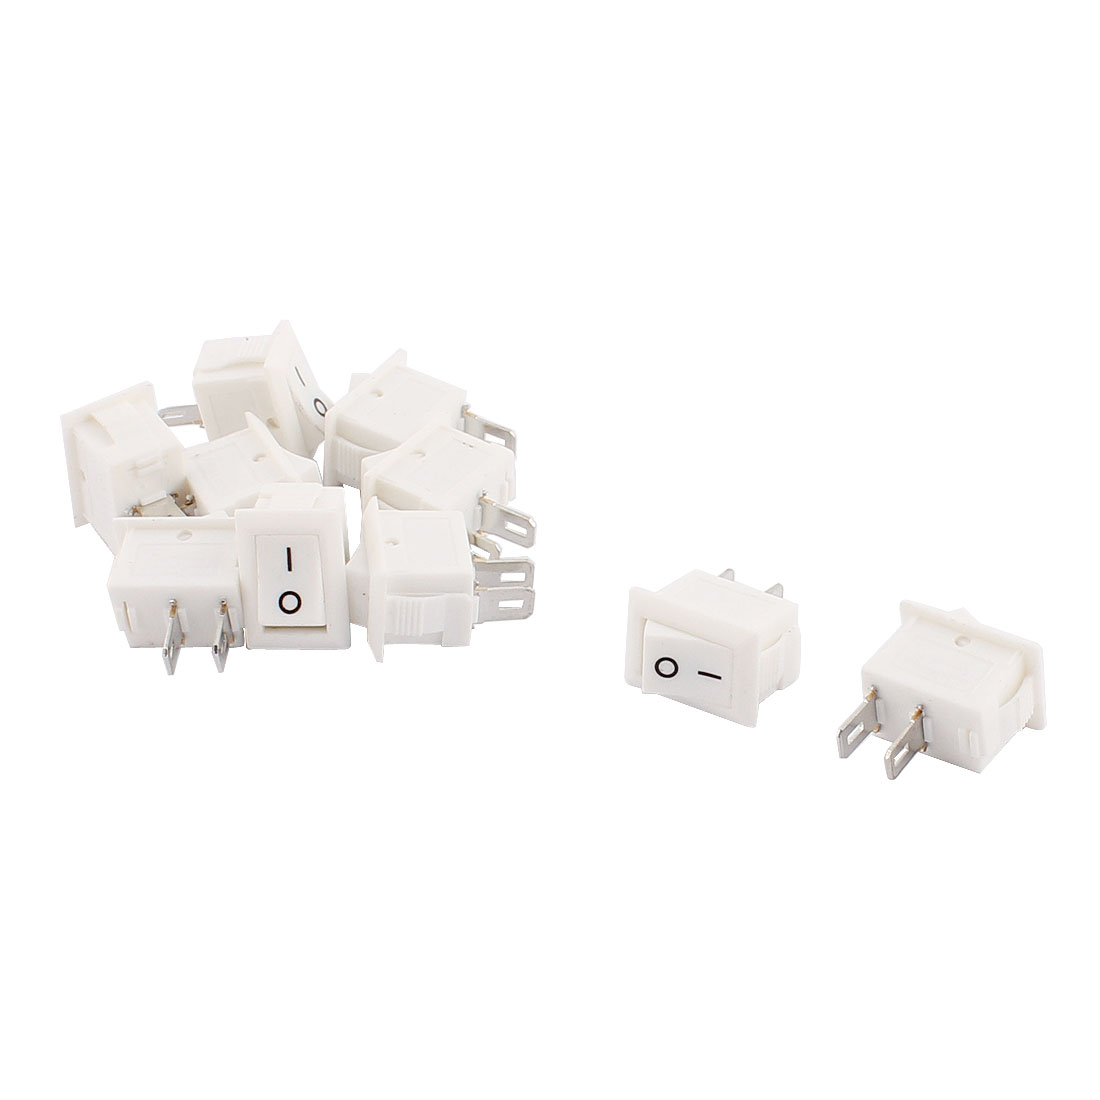 10 Pcs KCD11 3A 250VAC Snap In Mounting 2 Position SPST Rocker Switch White